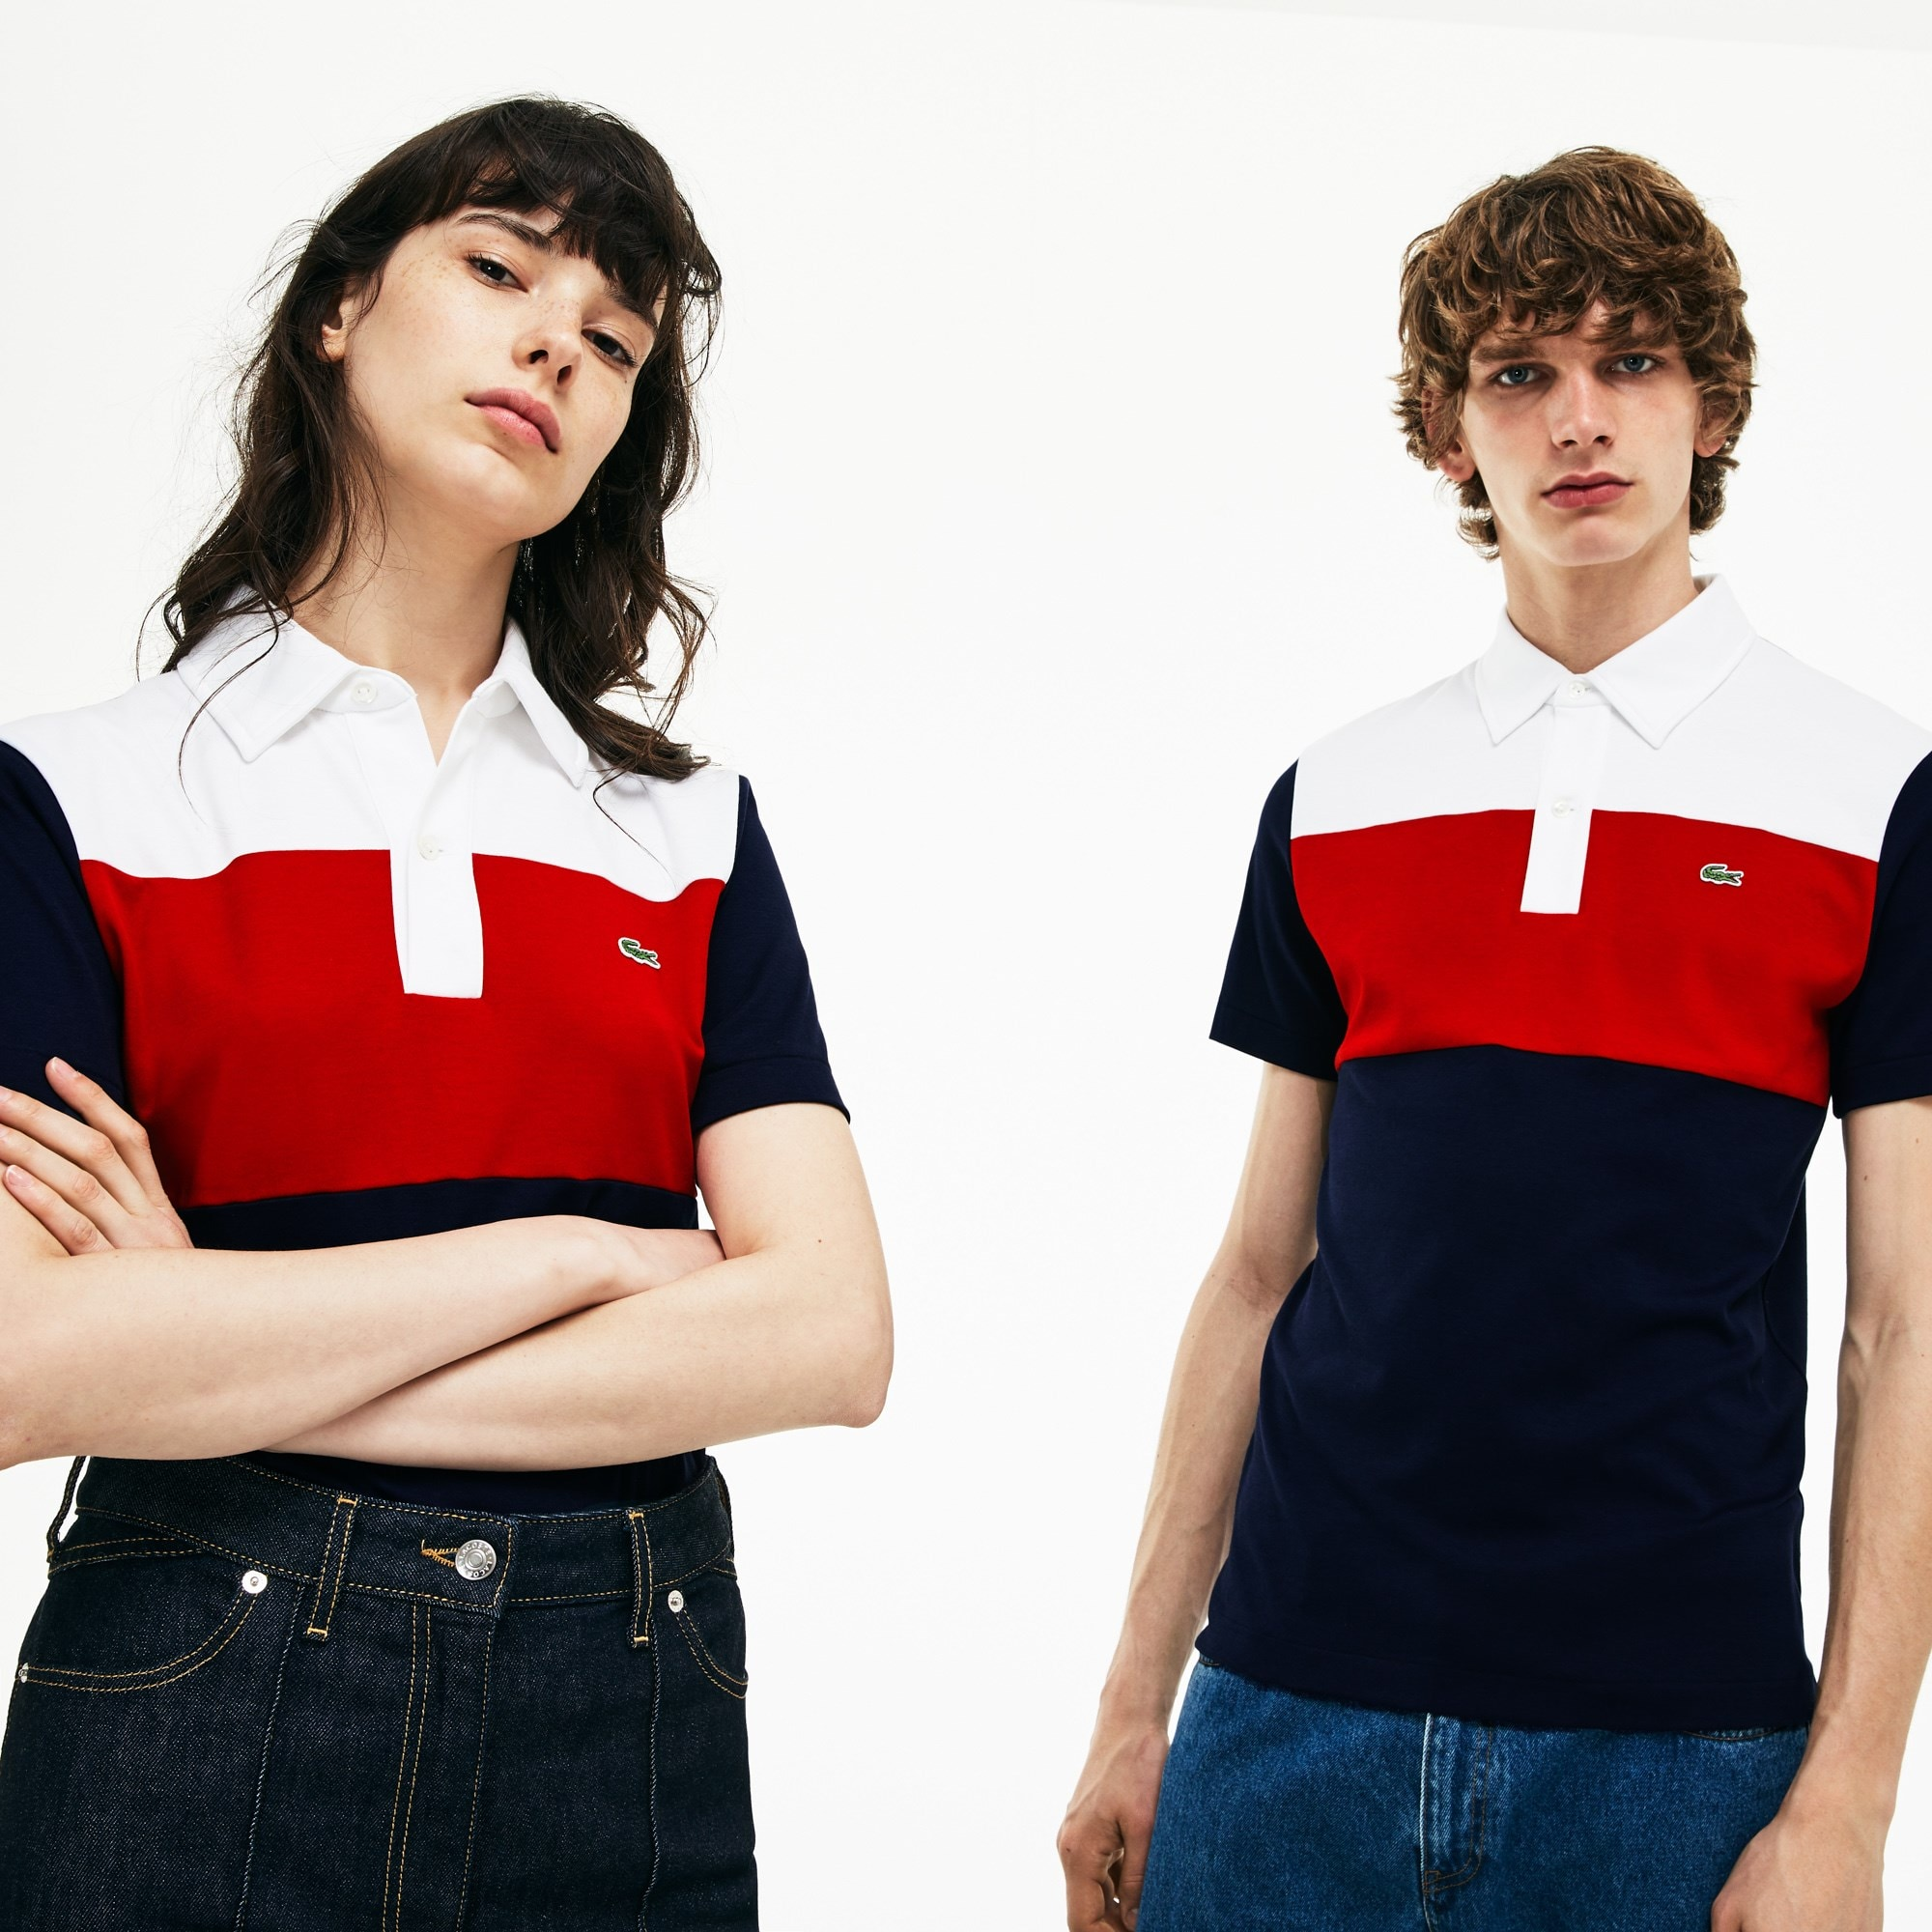 Unisex 1970s Revival Lacoste 85th Anniversary Limited Edition Interlock Polo Shirt by Lacoste